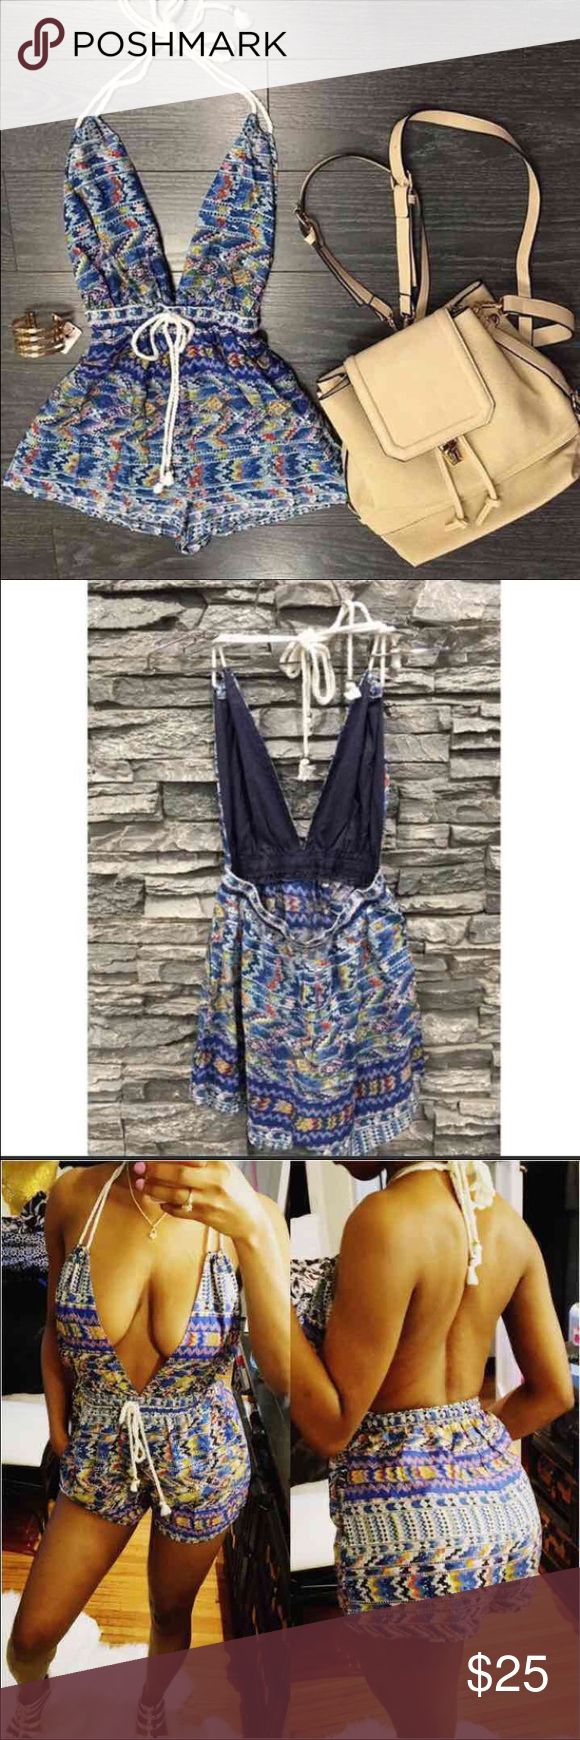 """❤️Sexy Print Halter Romper"""" ❤️Price Firm -Sexy Print Halter Romper"""" Fits Small and medium  Adjustable waist drawstring! Has Pockets! Super brezzy and Comfy!Brand for exp only! Zara Pants Jumpsuits & Rompers"""